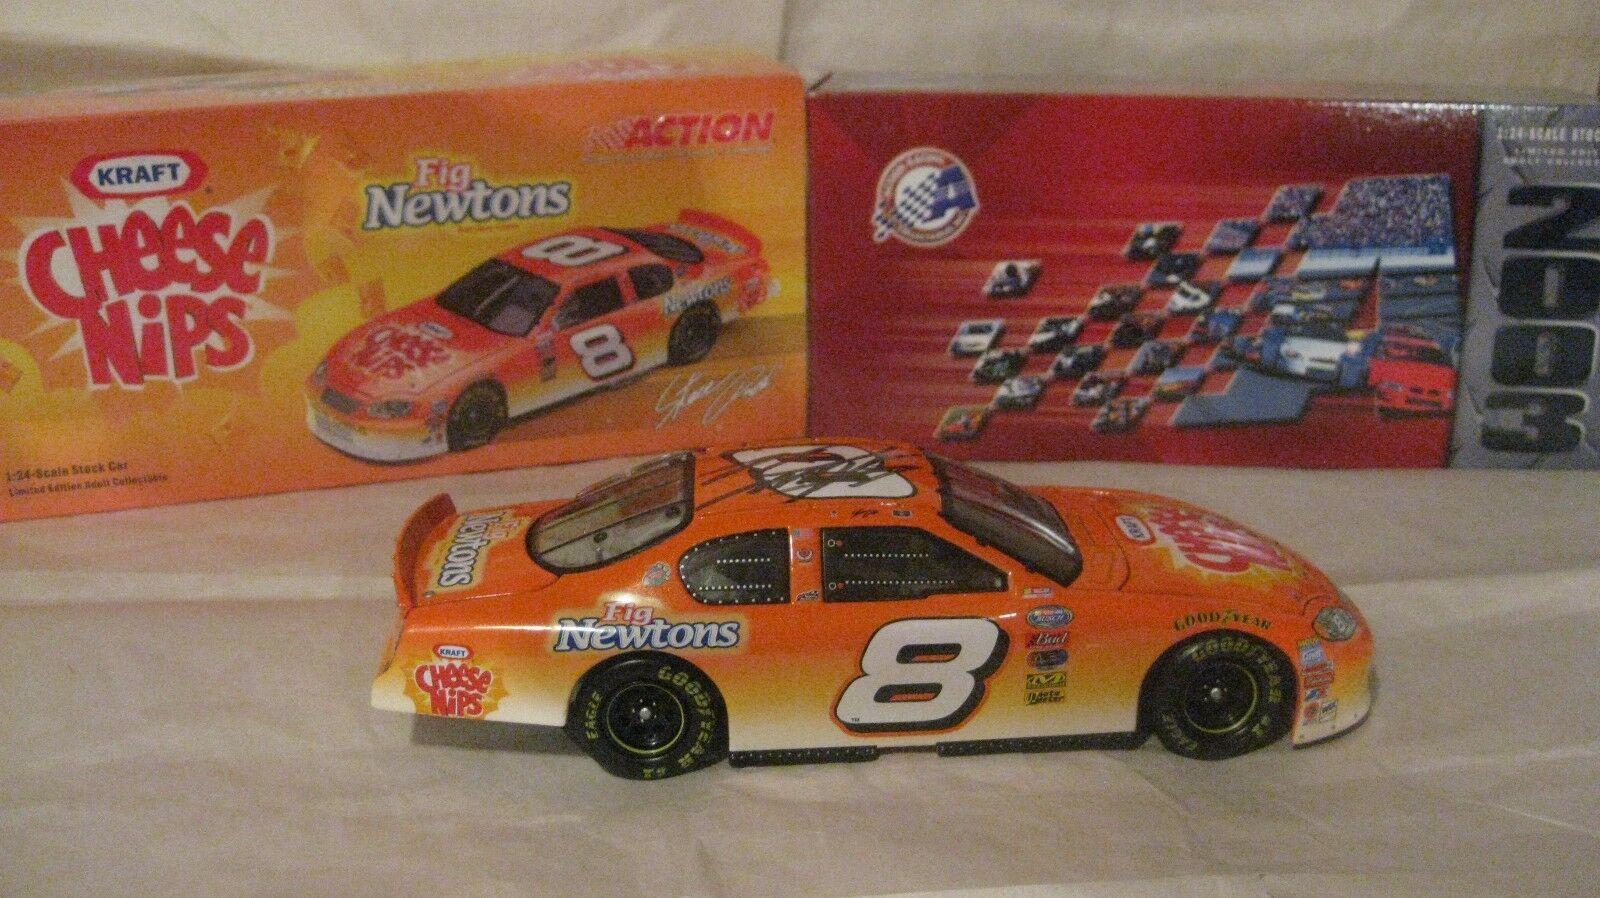 LE Nascar Steve Park Signed Cheese Nips Monte Carlo 1 24 Scale Diecast 2003